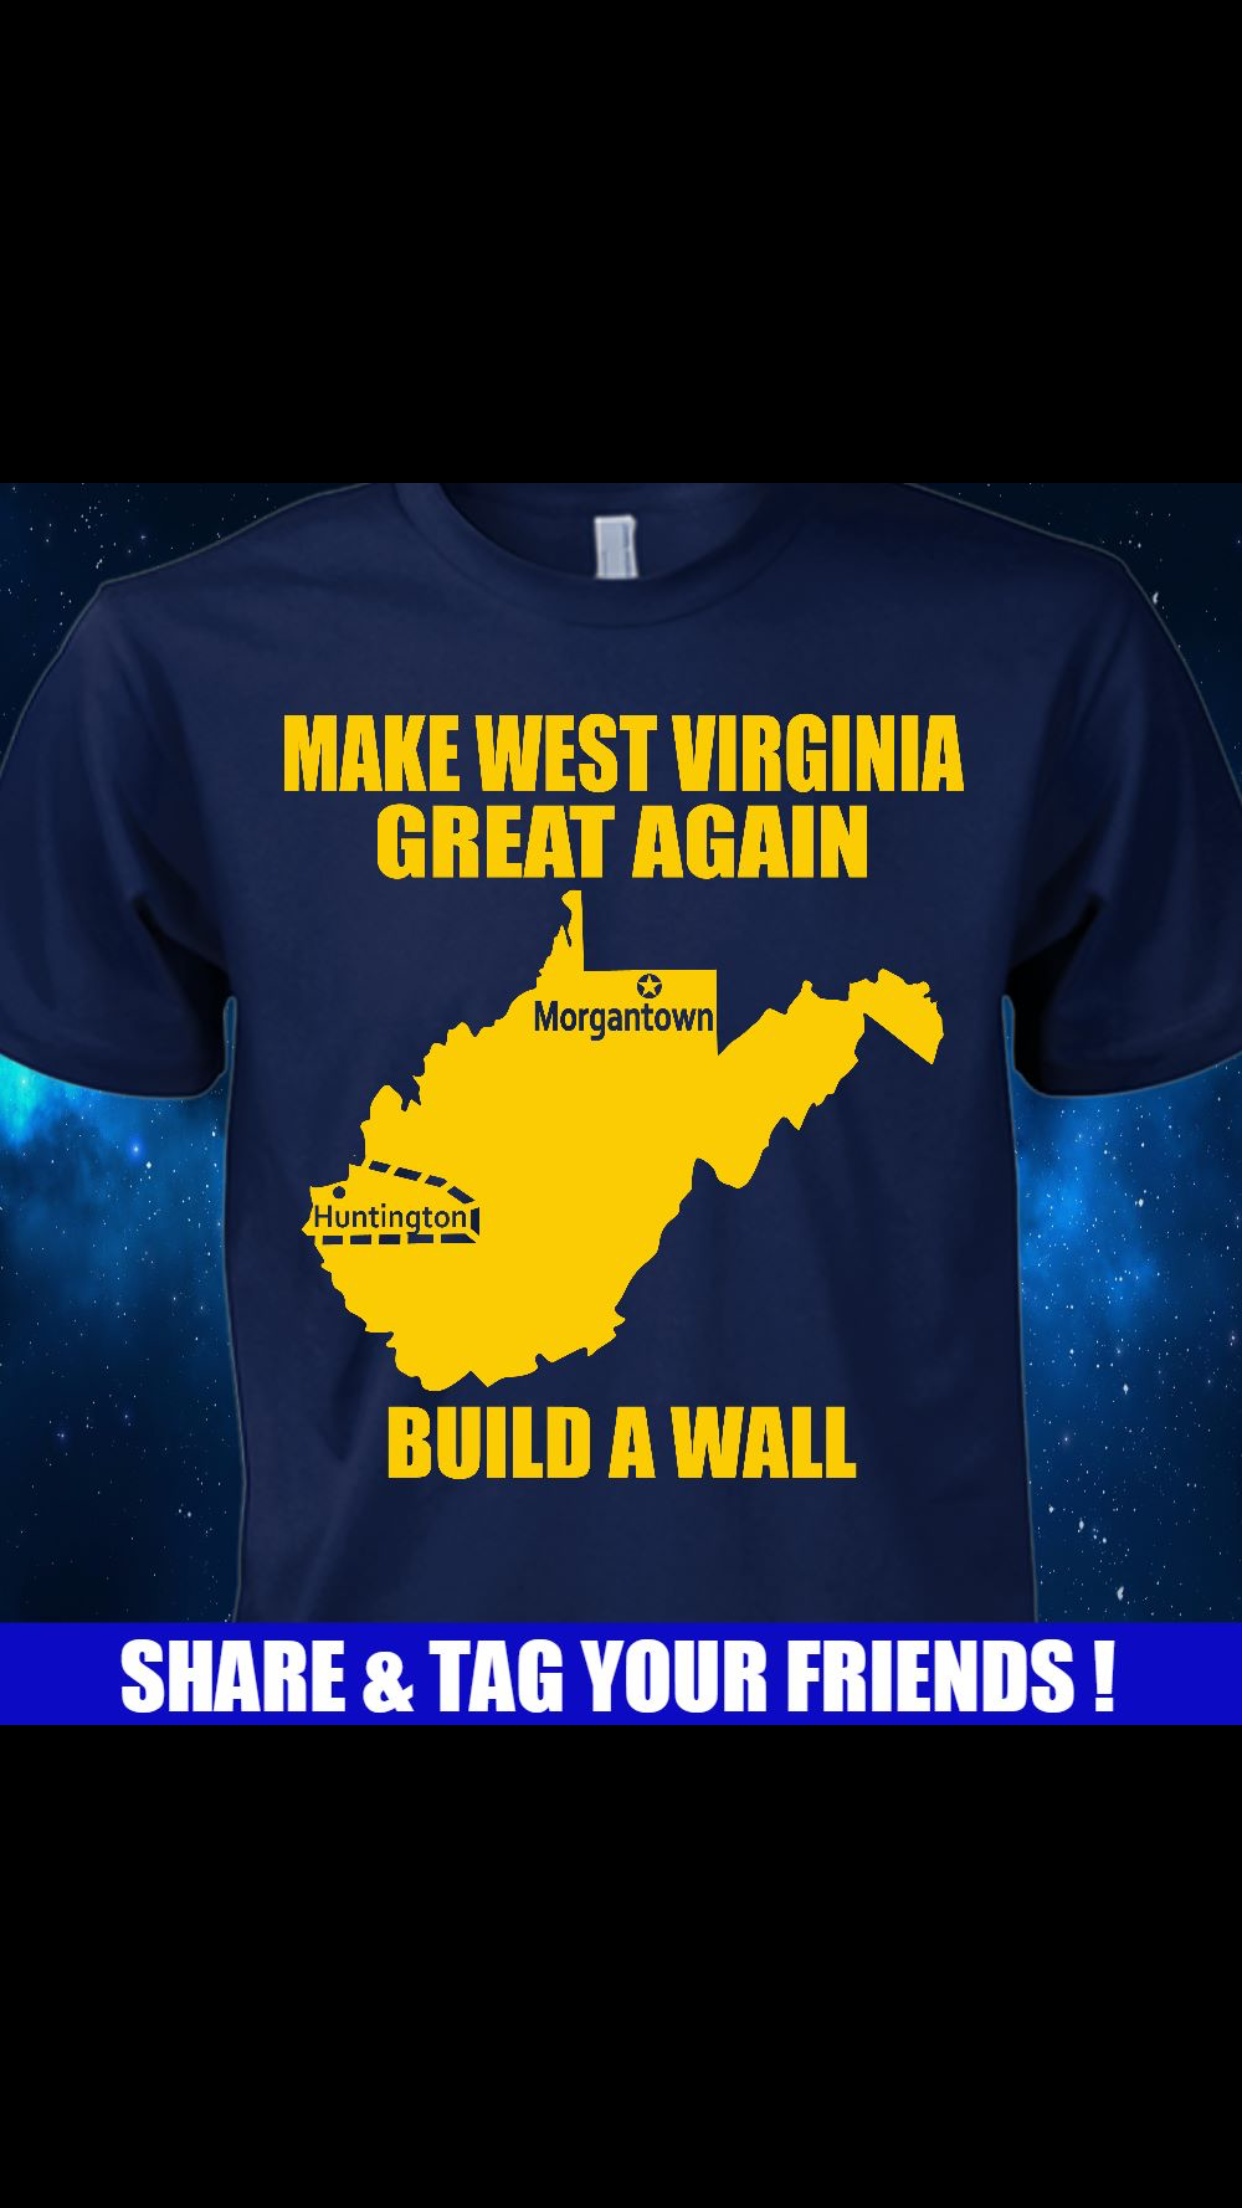 The Great Wall of West Virginia